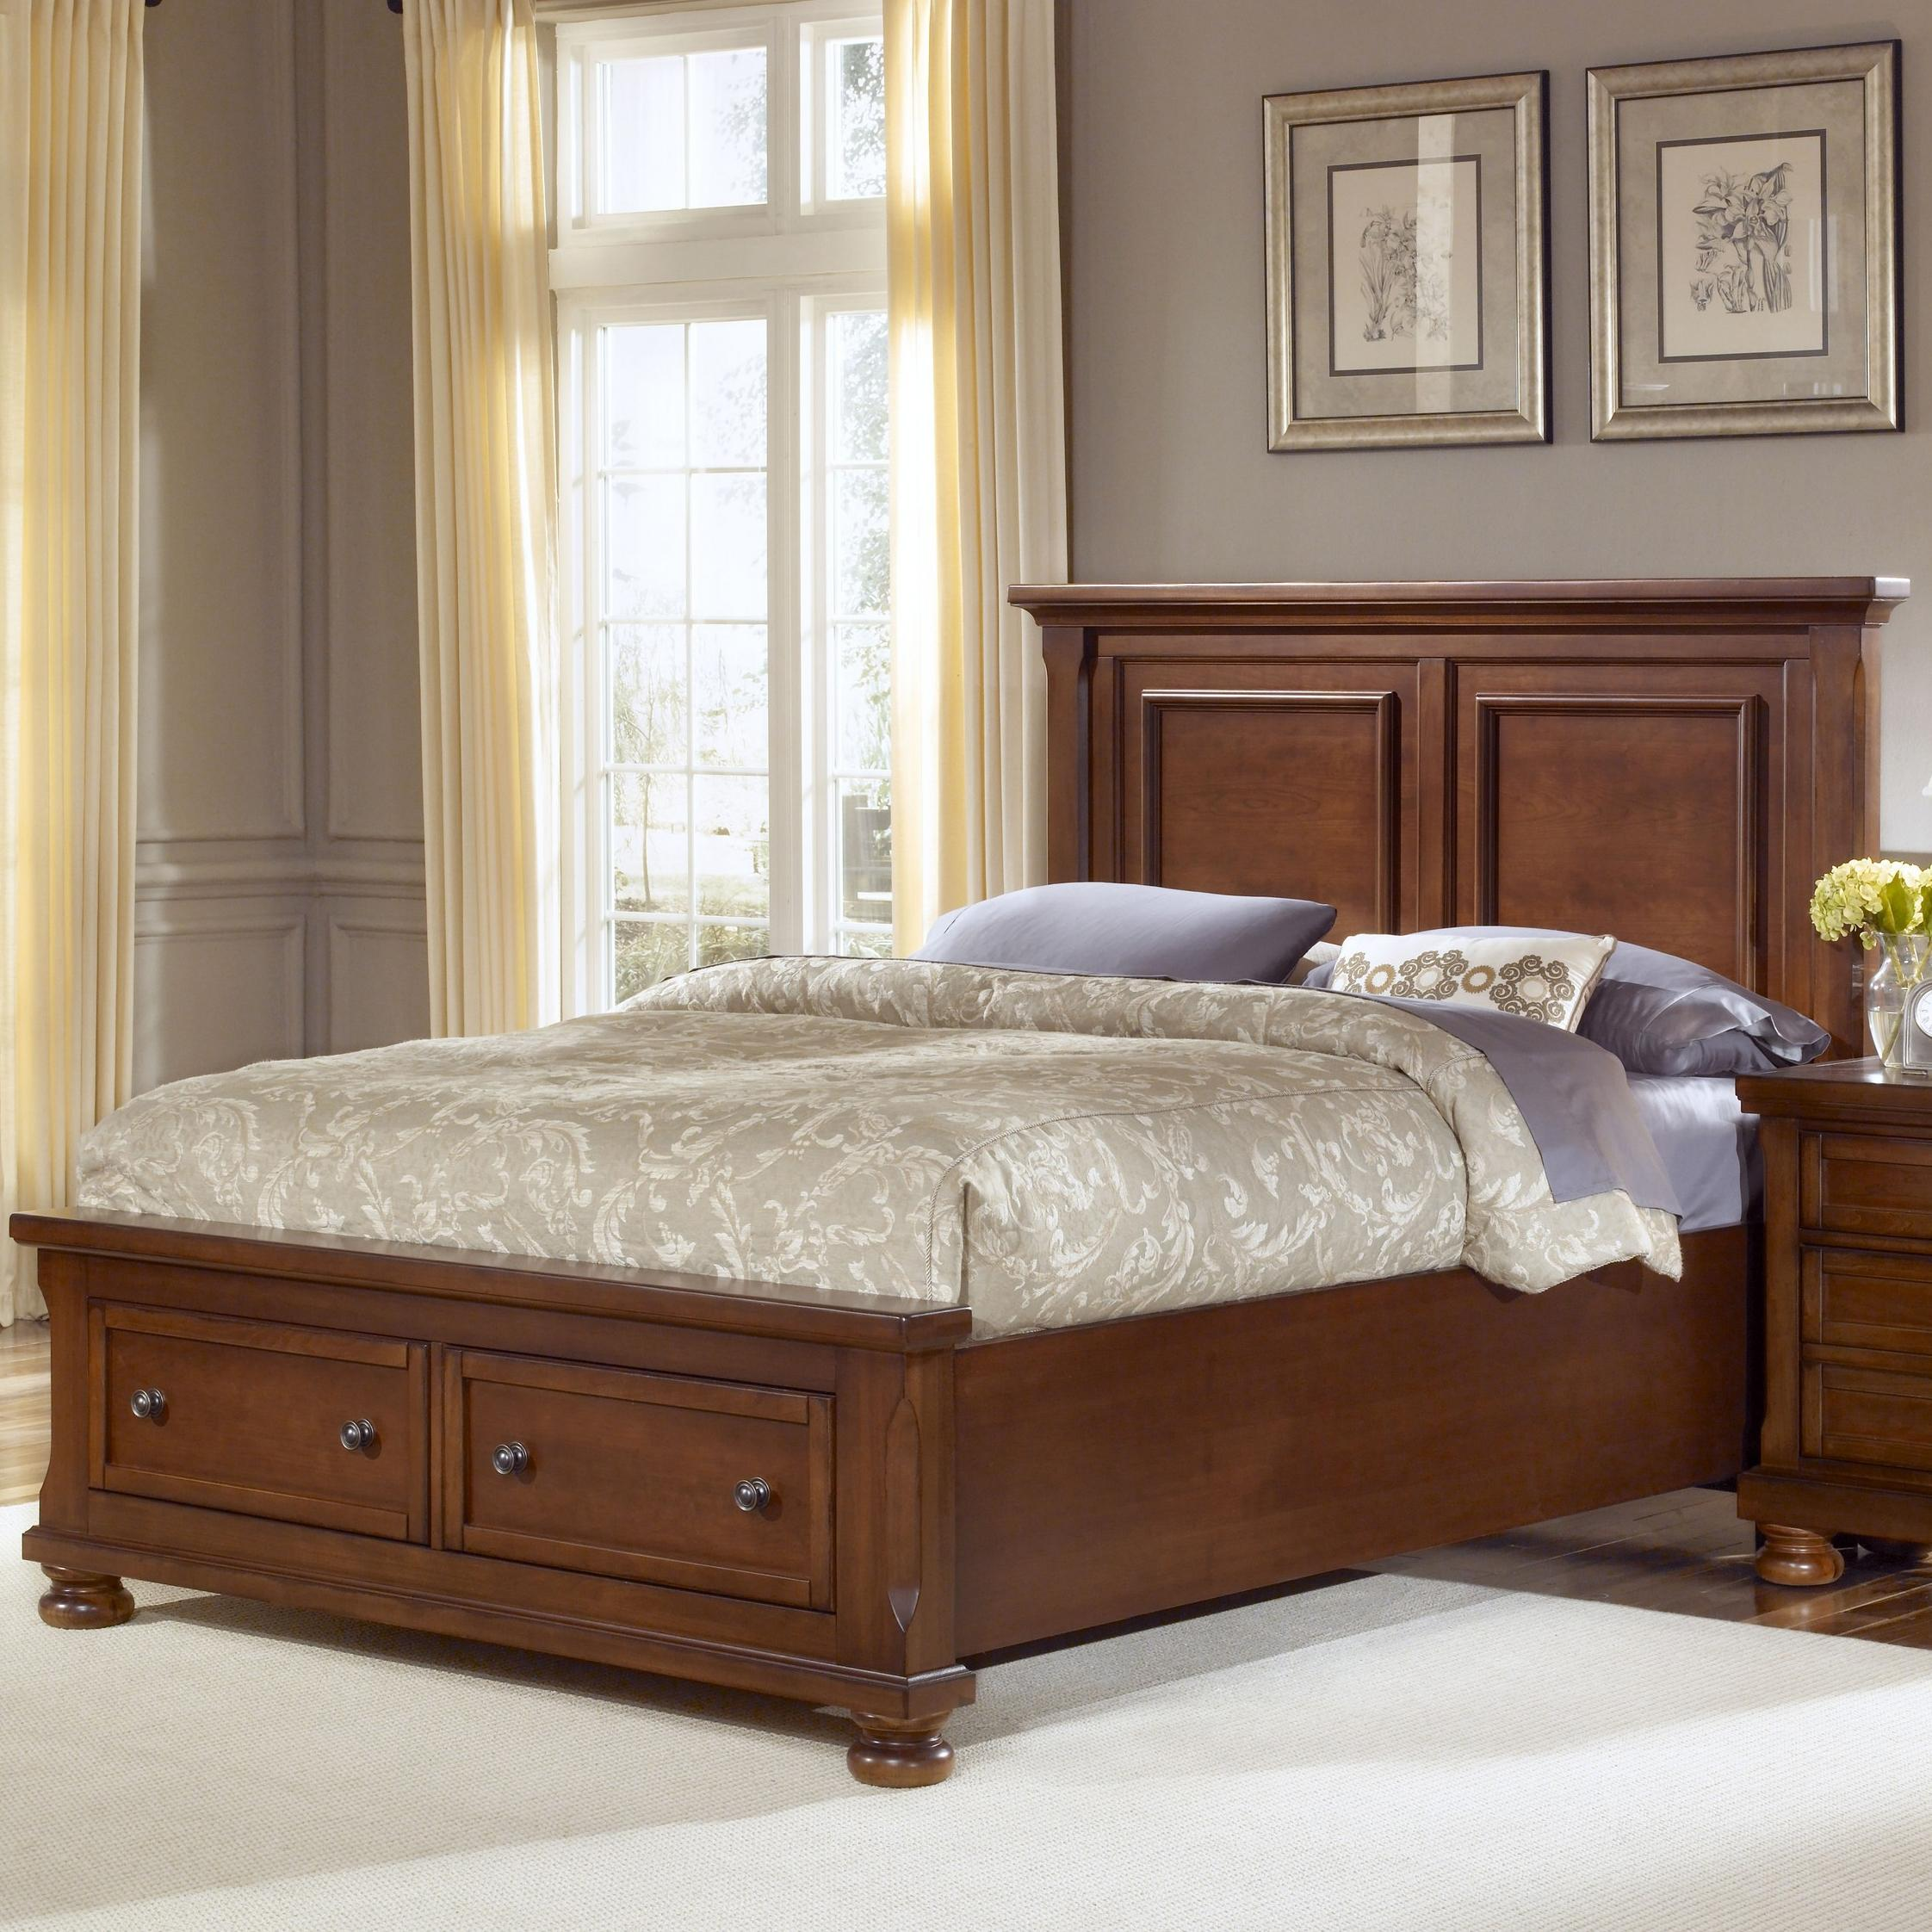 Vaughan Bassett Reflections Queen Storage Bed with Mansion Headboard - Item Number: 532-558+050B+501+555T